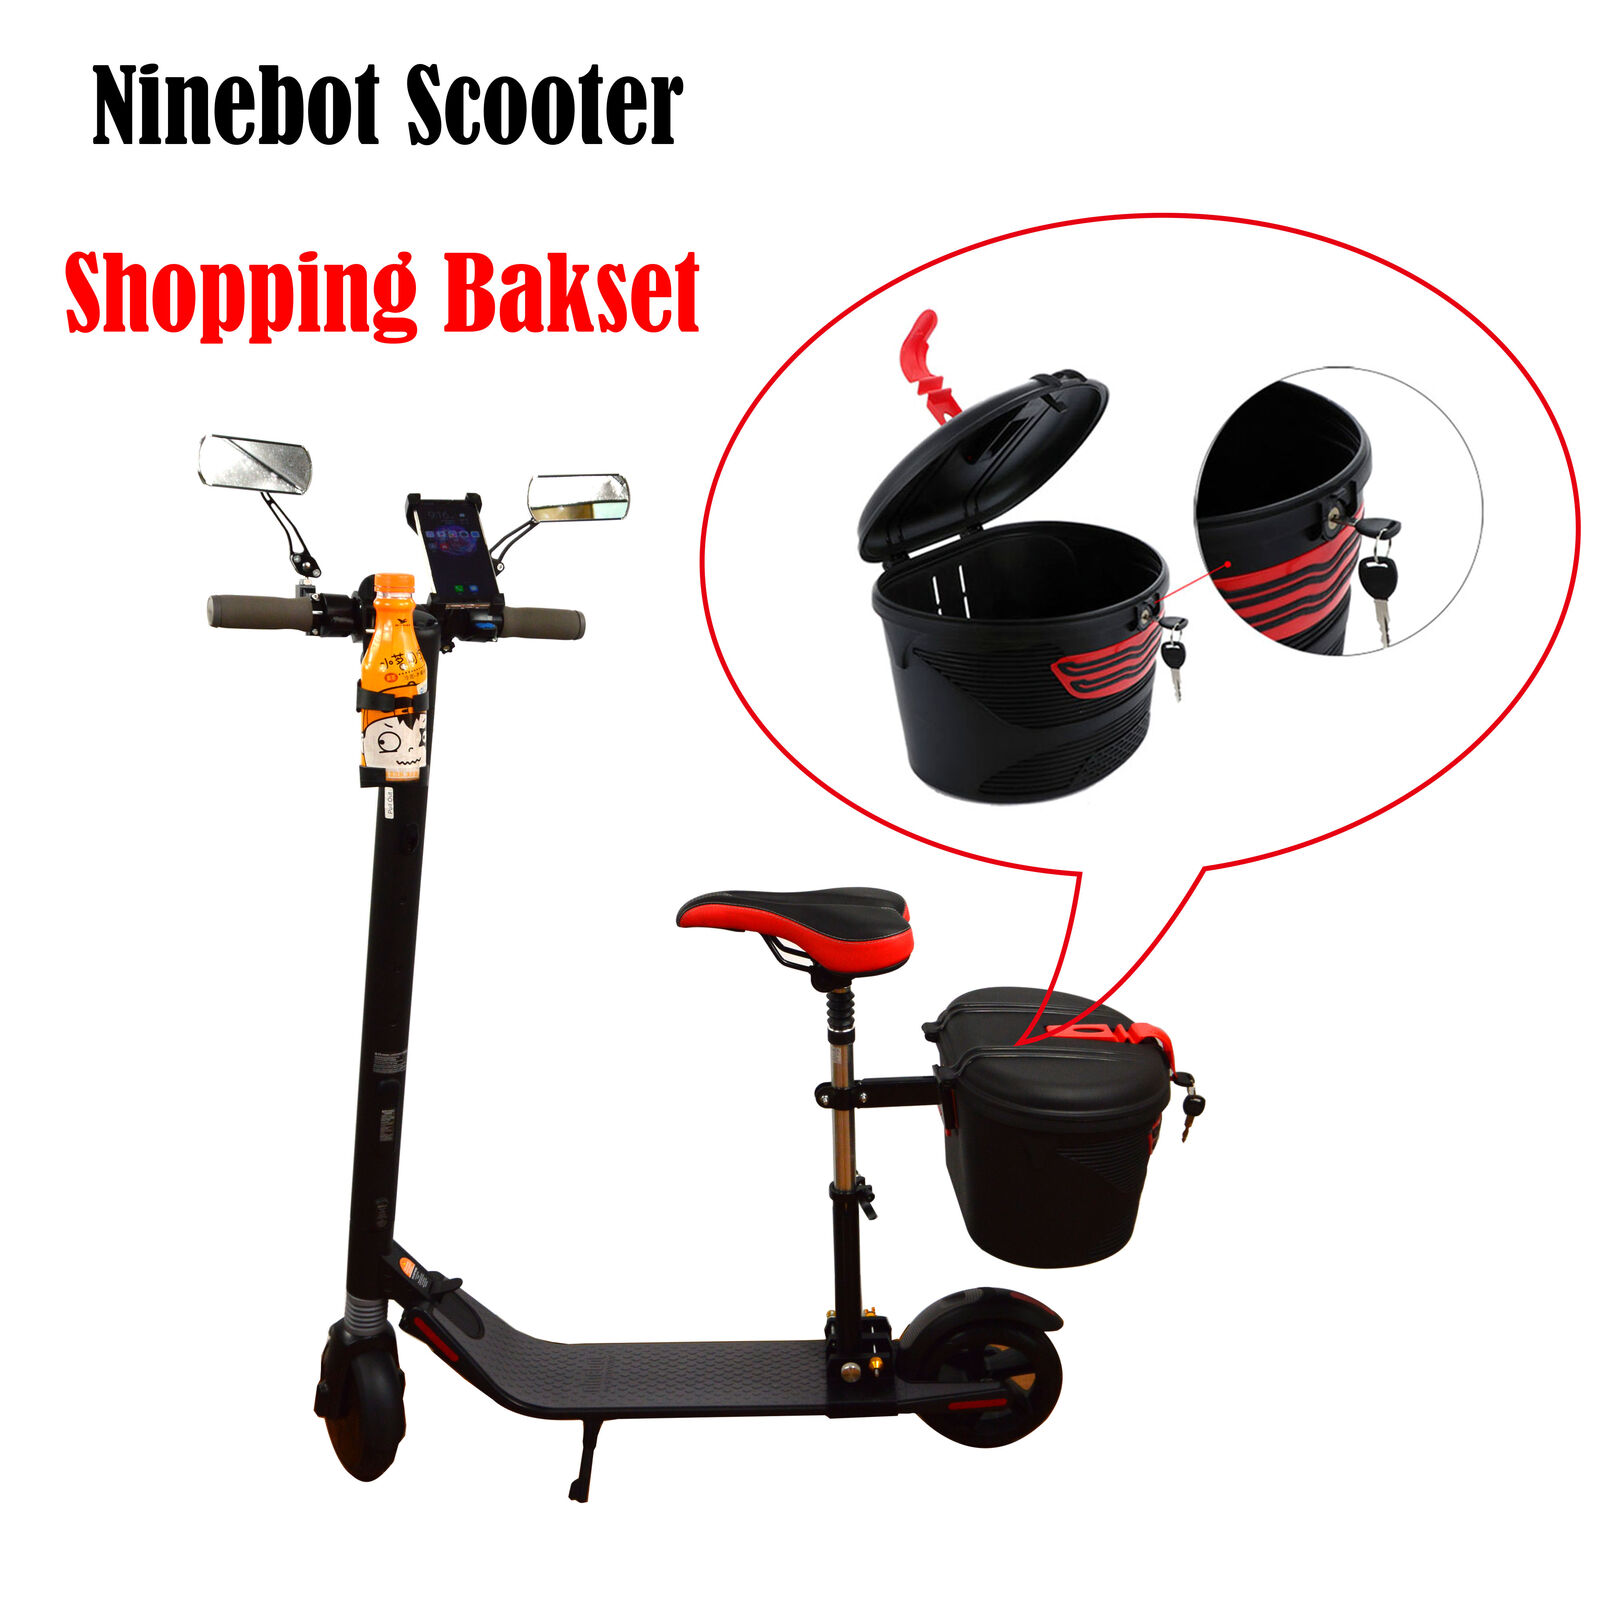 Ninebot Nine Electric Scooter Plastic Basket Rear Insttutti